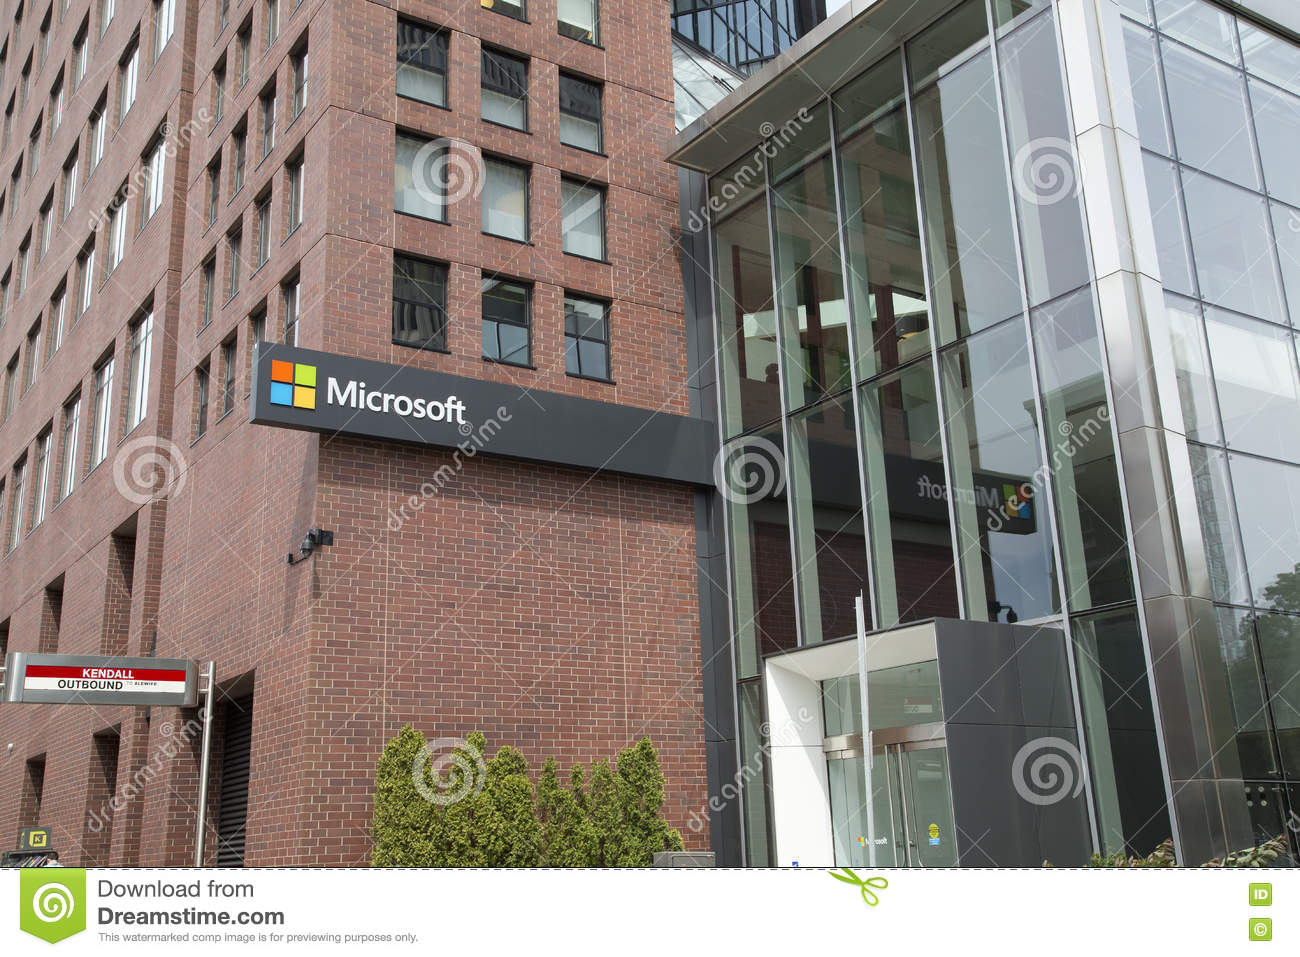 microsoft office building. Microsoft Office Building At MIT University Editorial Photography - Image Of City, Jouney: 75609737 G